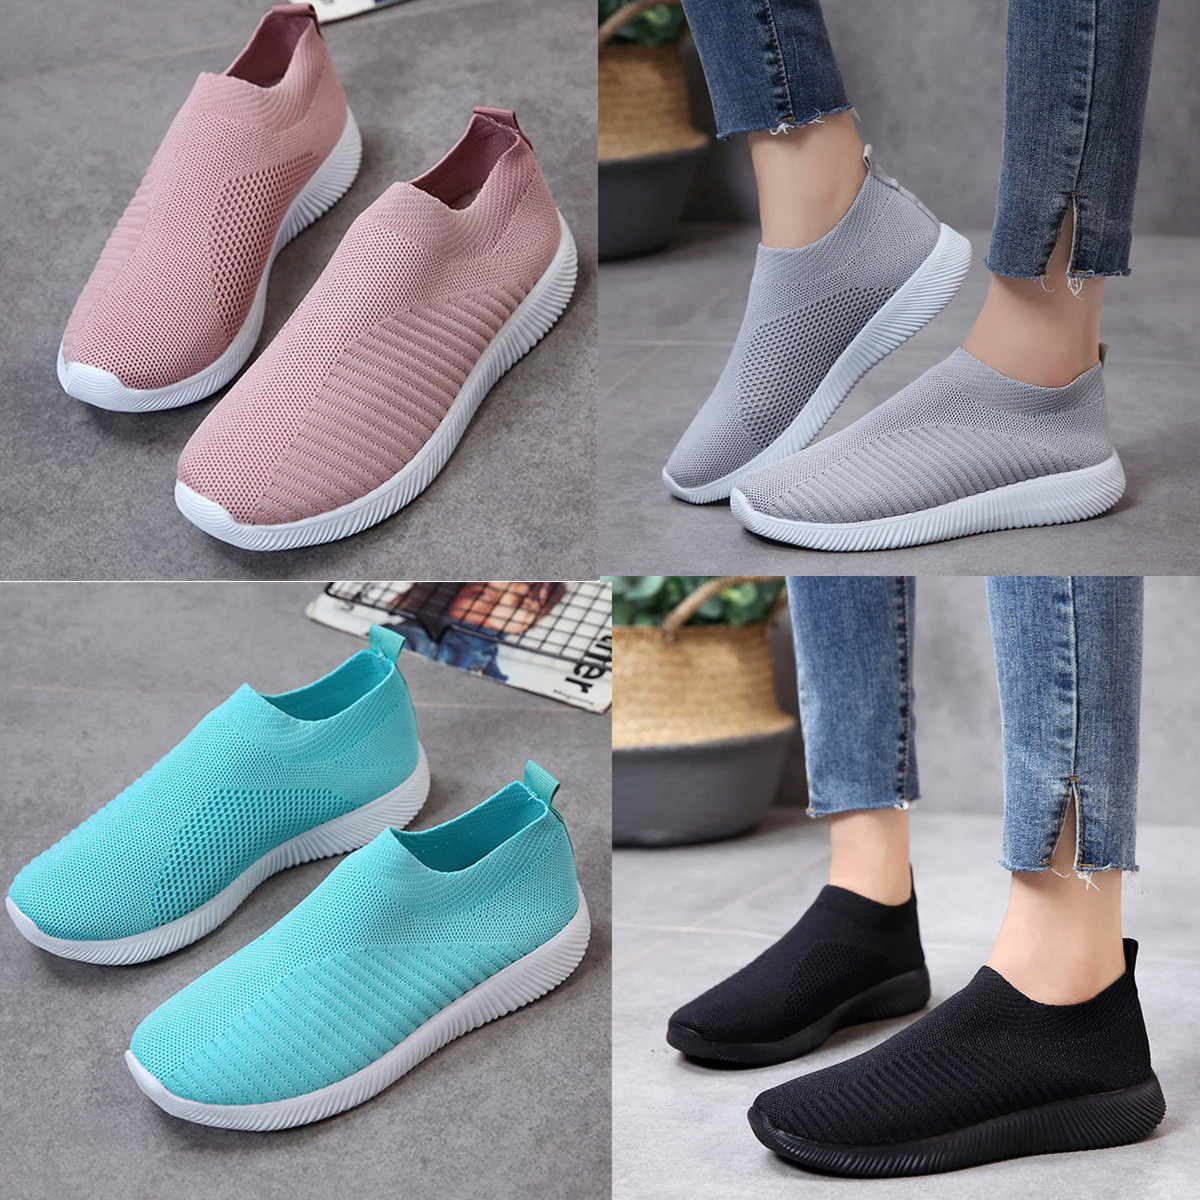 Sports Shoes for Men Blueberry Pattern Natural Fresh Canvas Slip-on Casual Printing Comfortable Low Top Girls Slip On Shoes